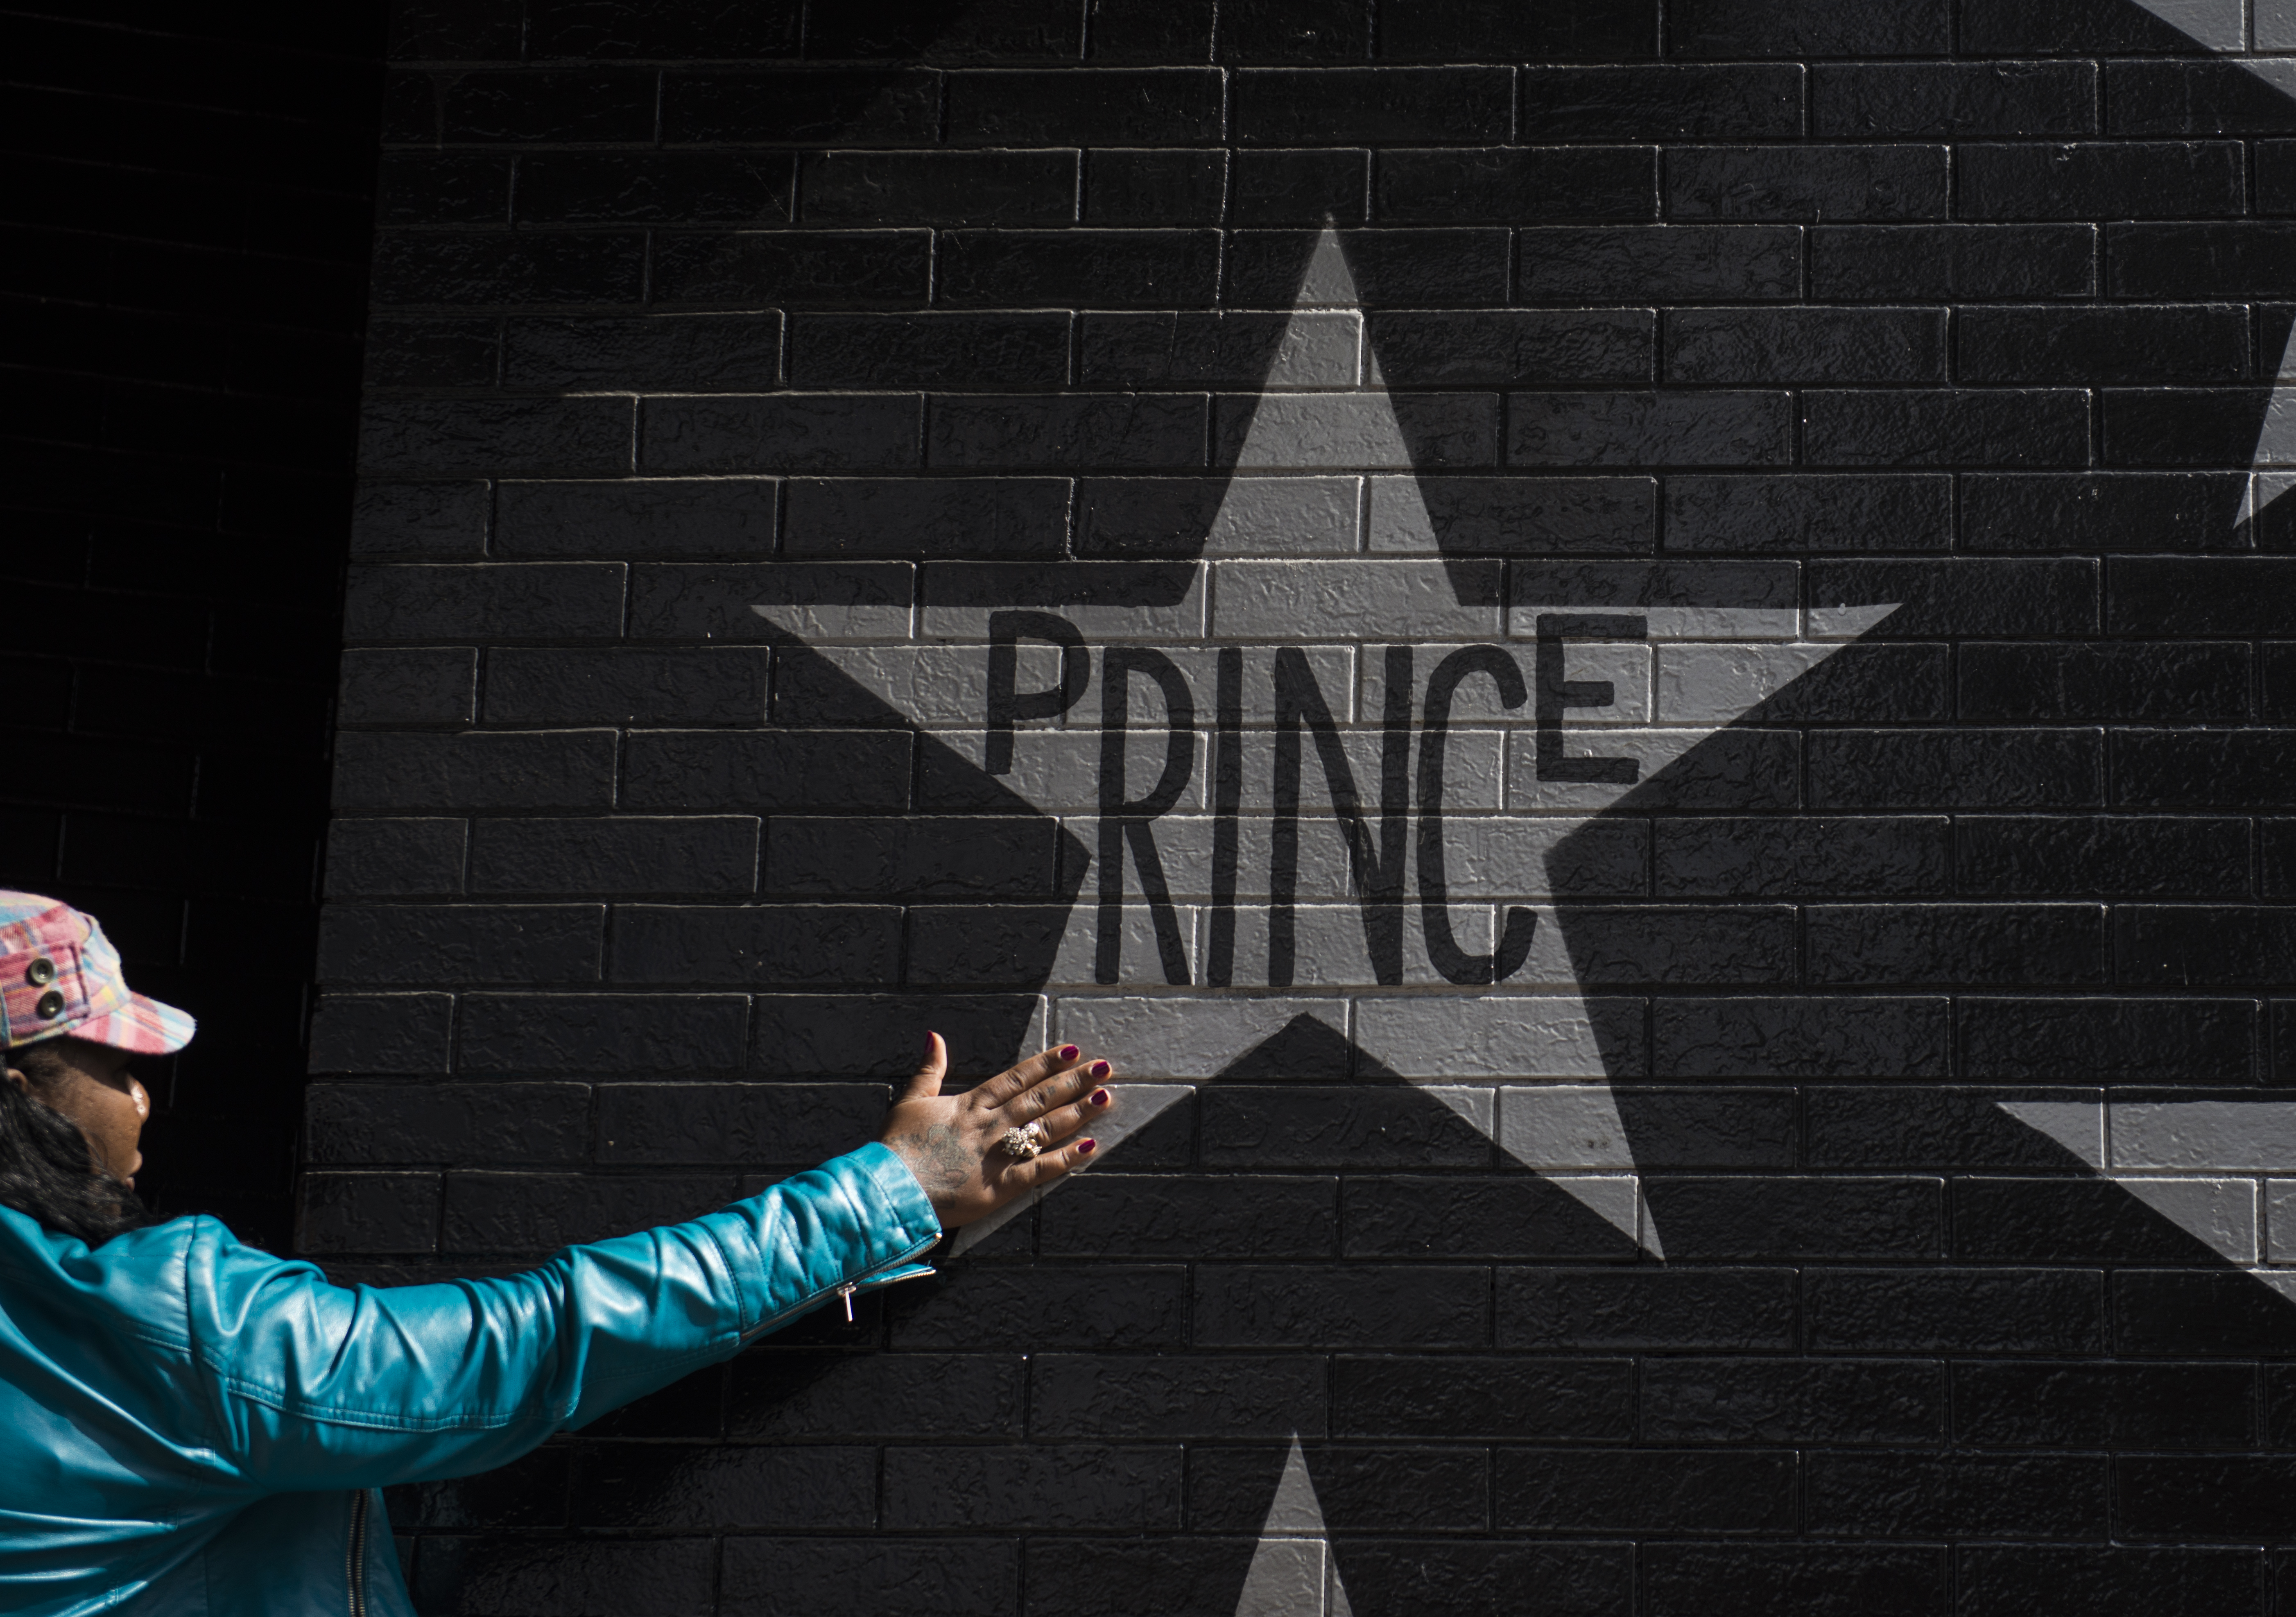 Prince's Sister Could Inherit $800 Million, Says Report